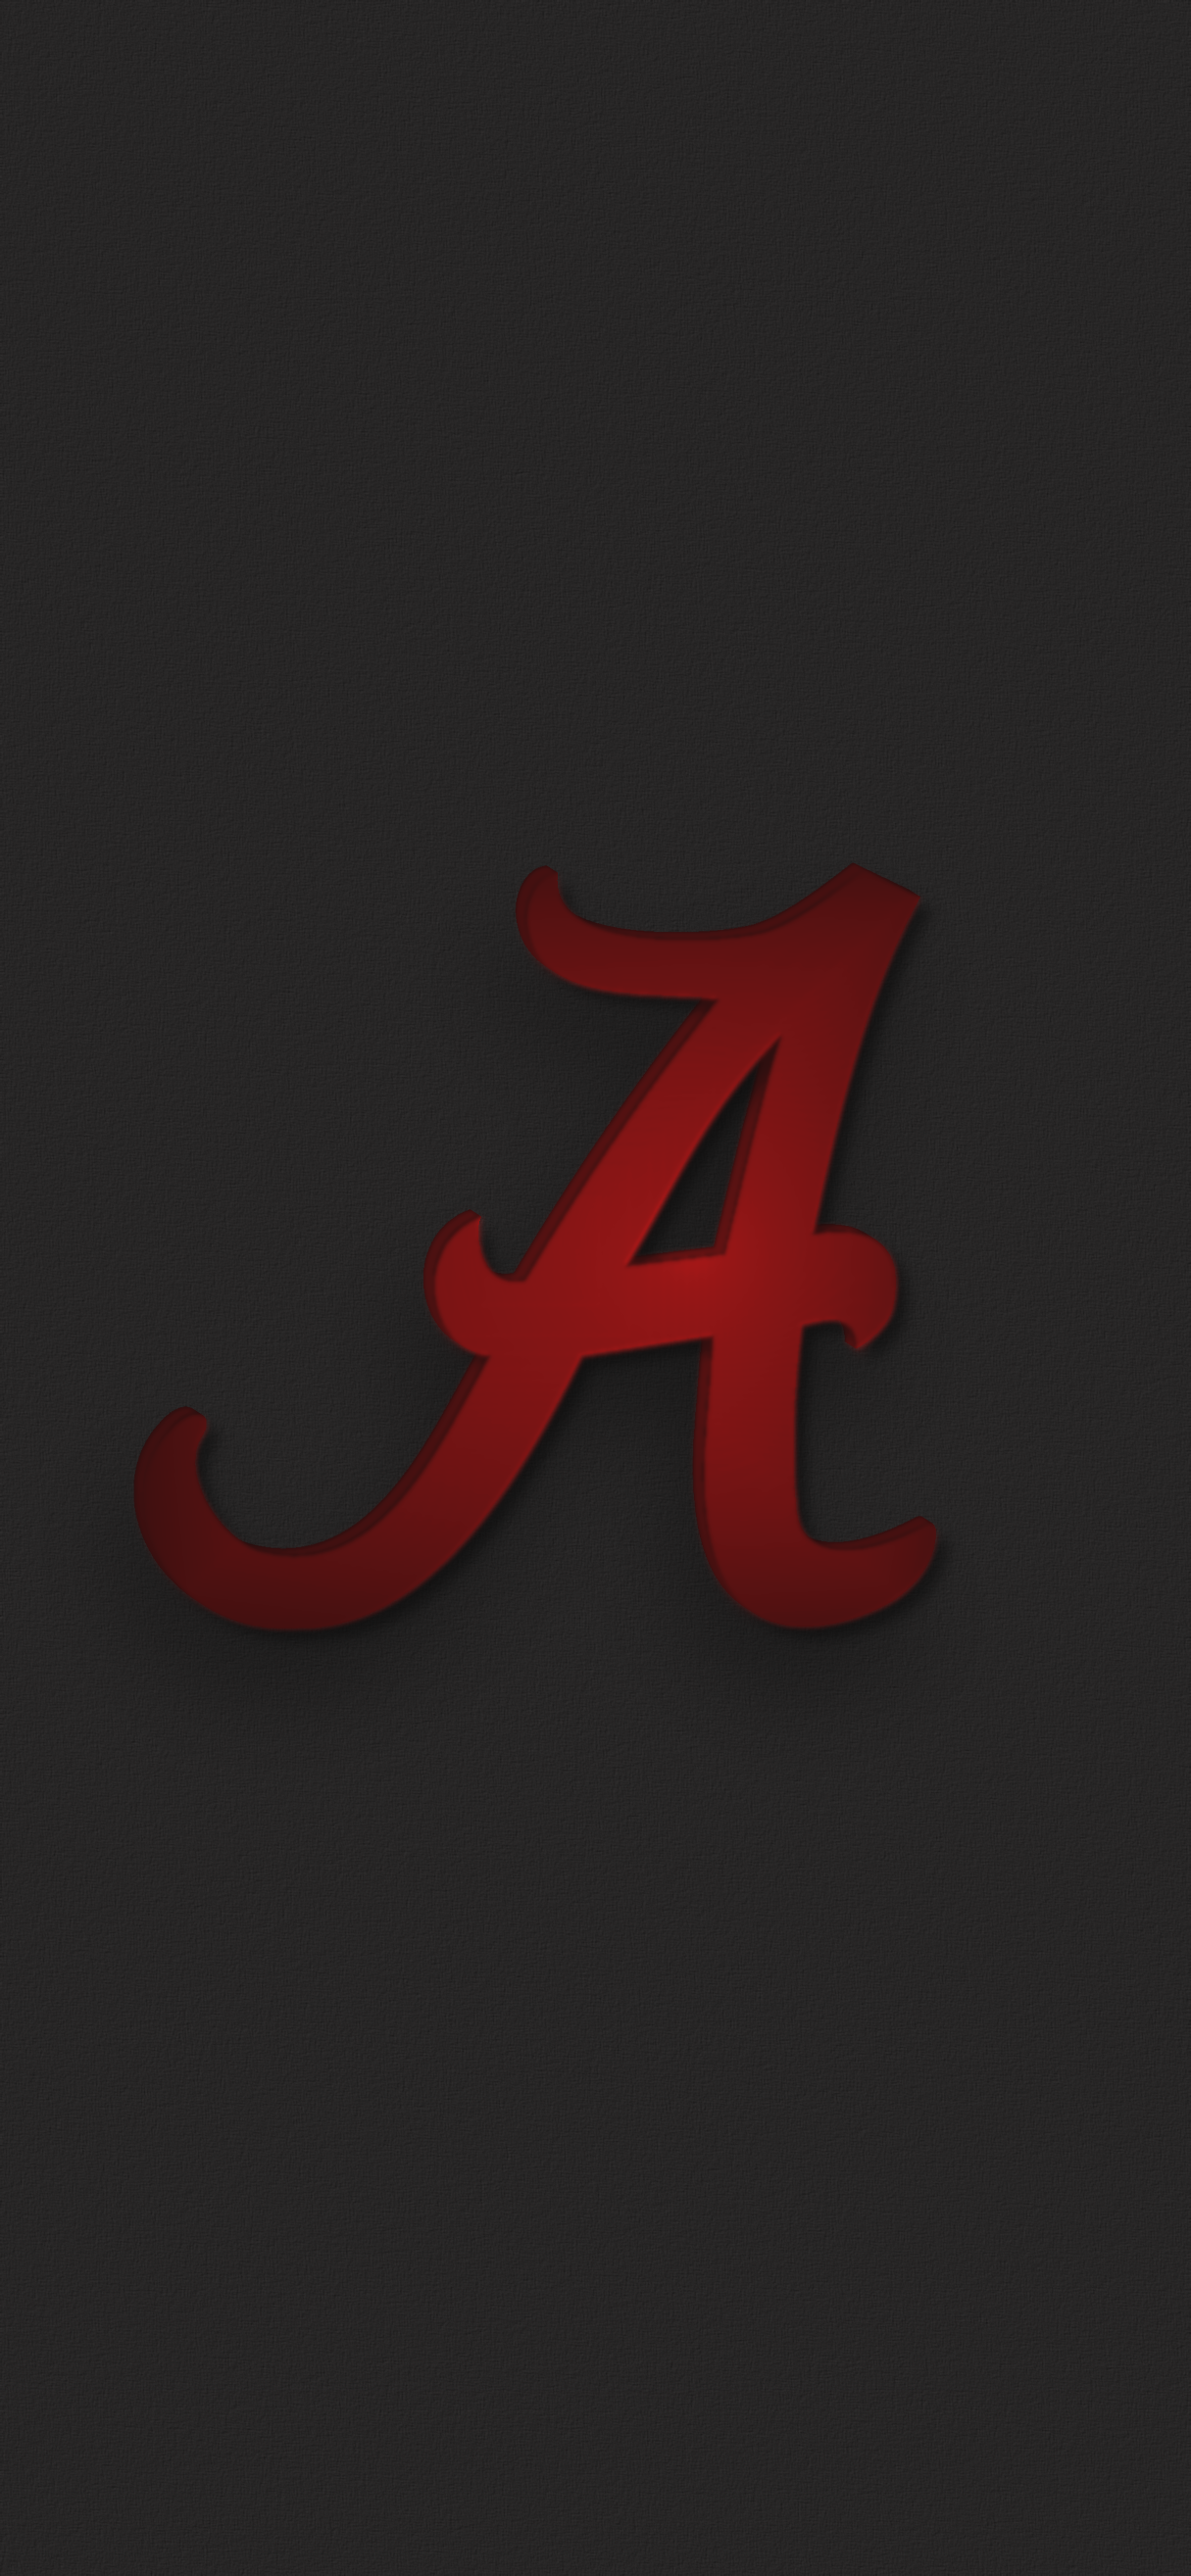 A Script 11 Alabama Crimson Tide Logo Alabama Crimson Tide Football Crimson Tide Football